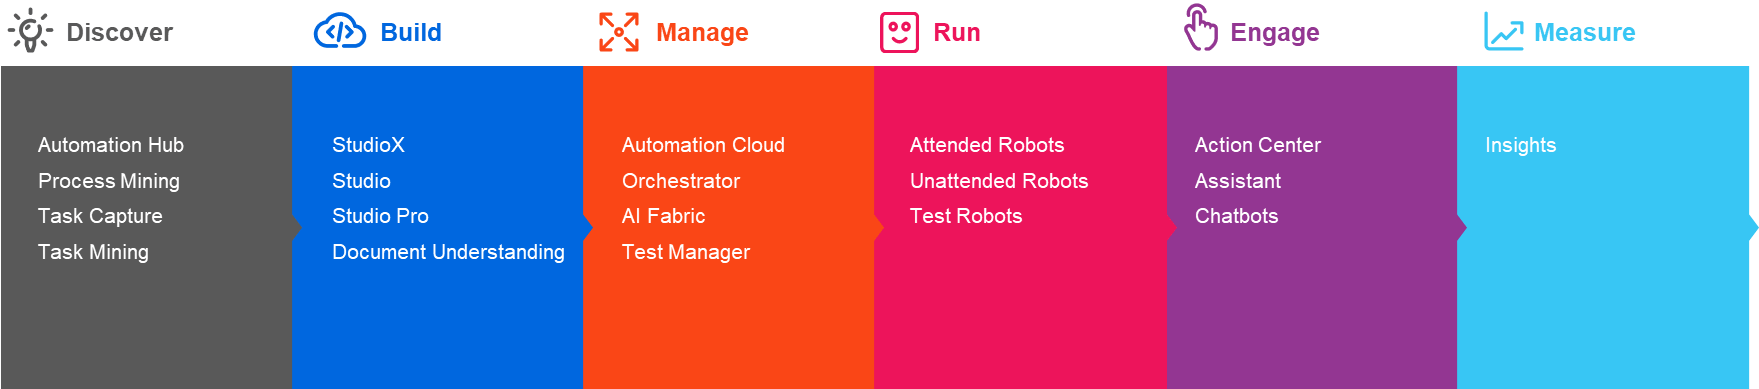 5 Ways RPA and AI Can Position Businesses For Success Now and After COVID-19